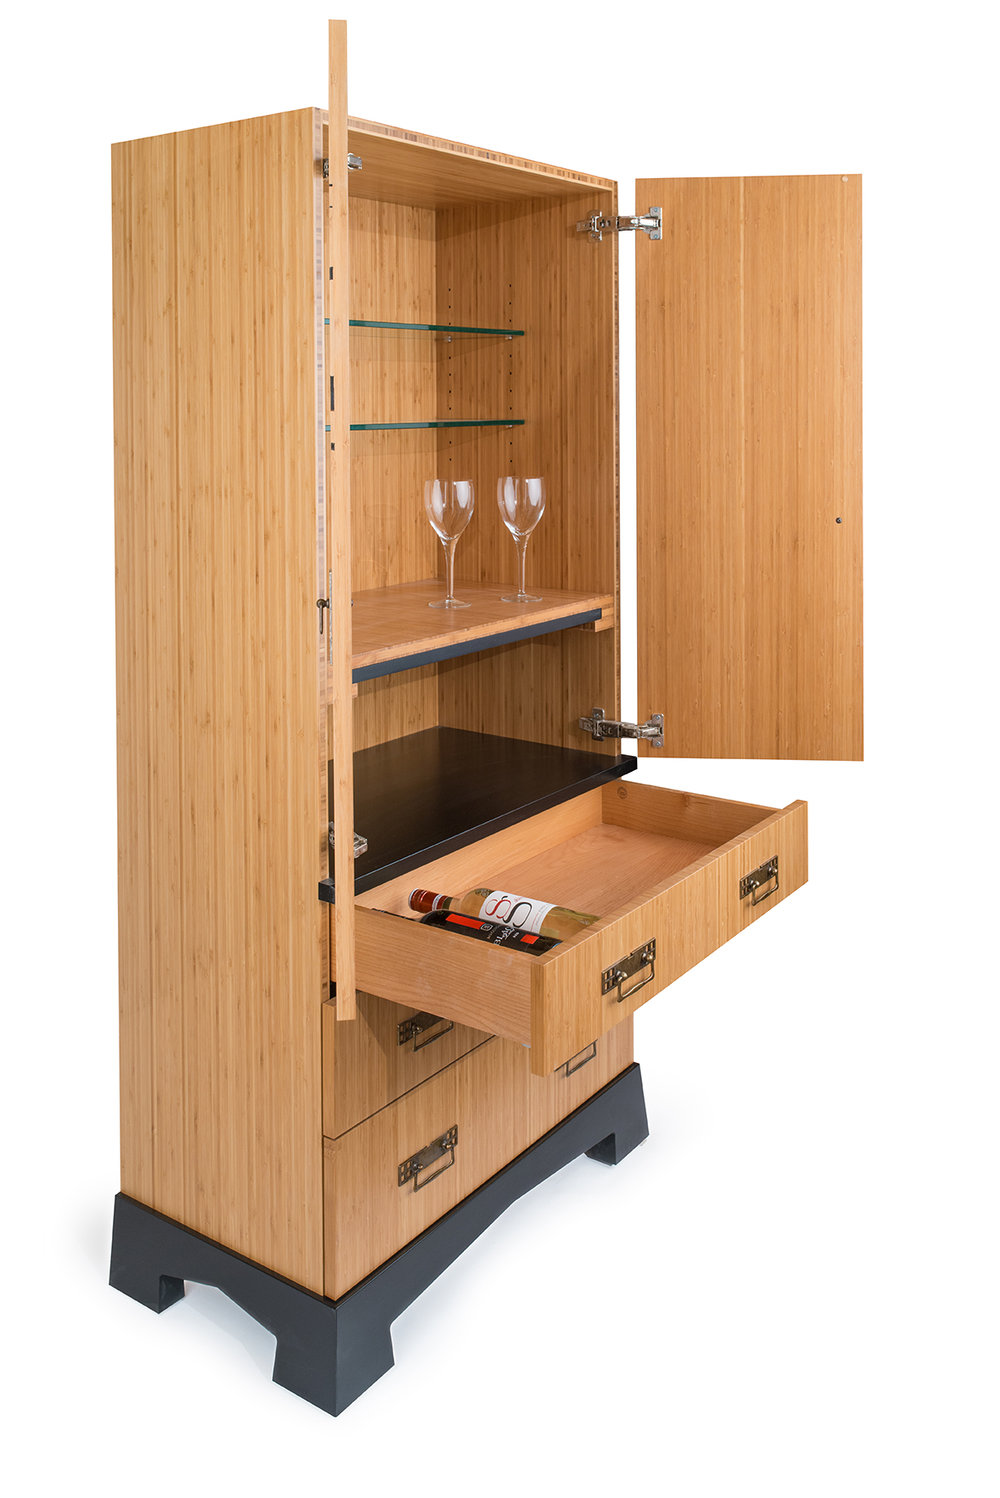 Bamboo Plywood, Alder, Paperstone Pull Out Shelf And Glass Shelves. Lacquer  Finish